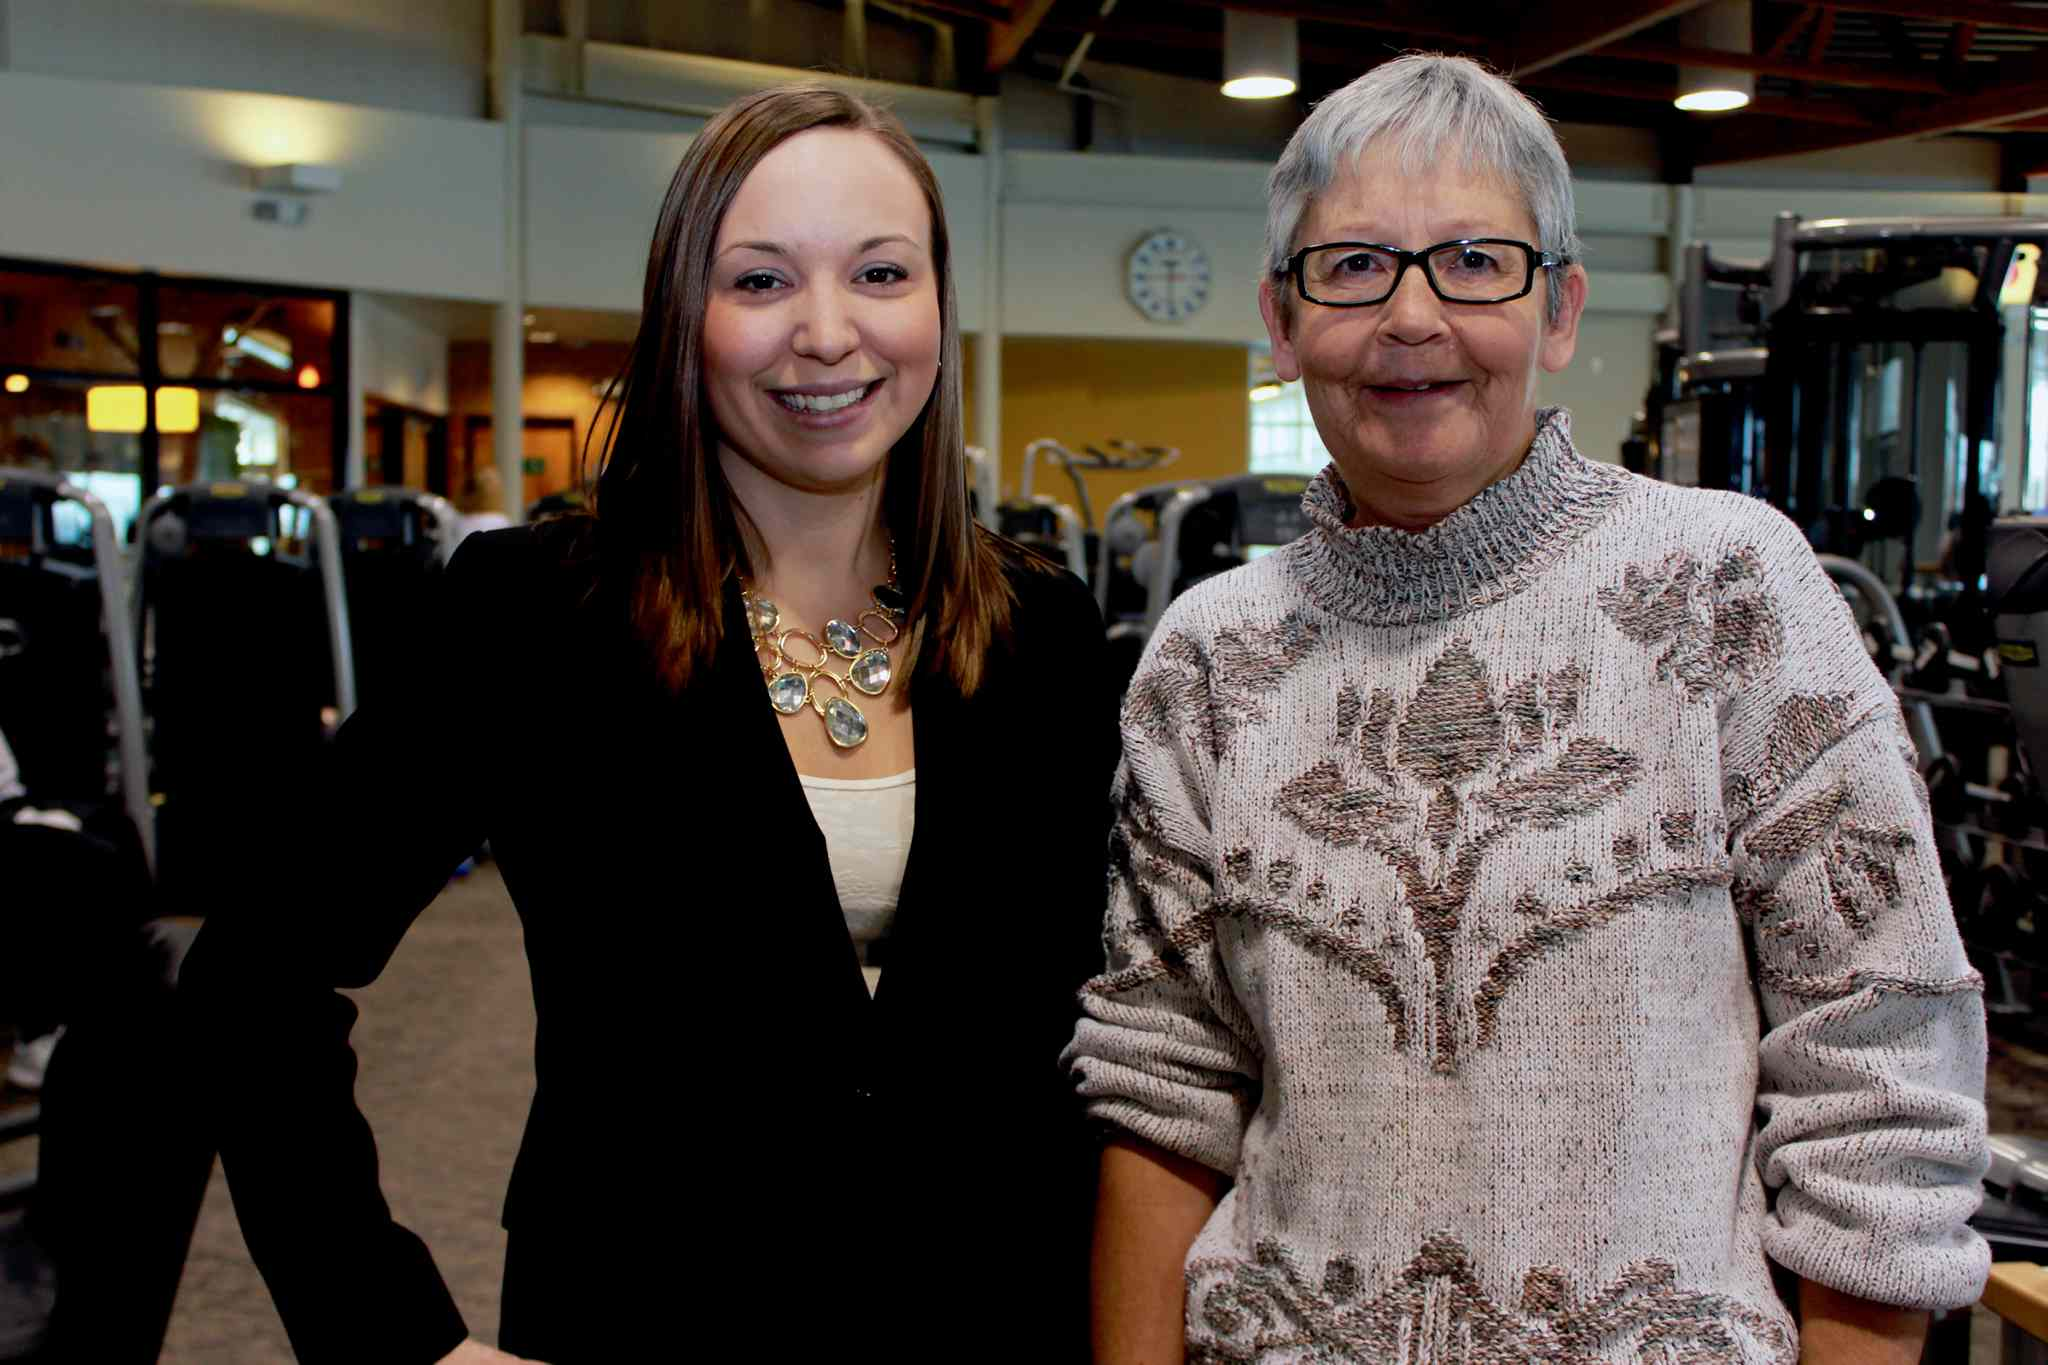 Get Better Together provincial and outreach coordinator Amy Yonda (left) and Judy Simcox, a participant and peer leader of the Wellness Institute program.